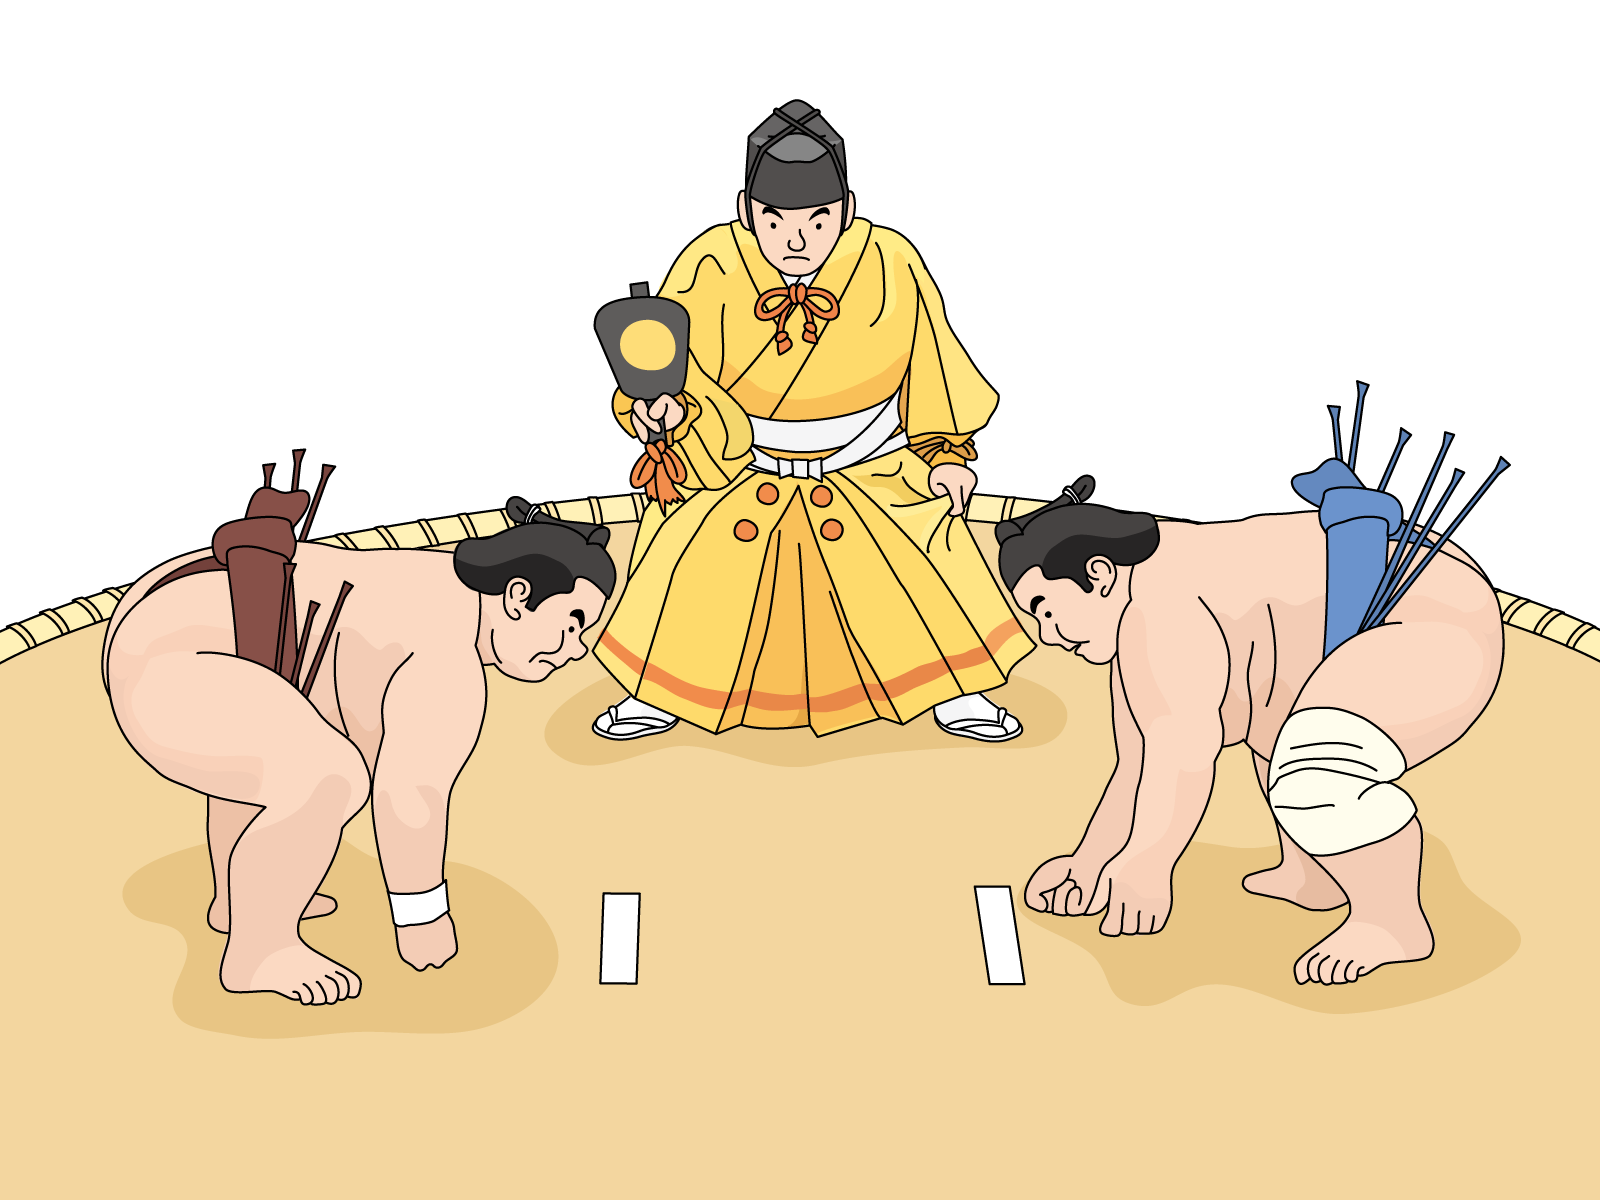 Wrestlers clipart sumo wrestler. Tournament and ticket purchase